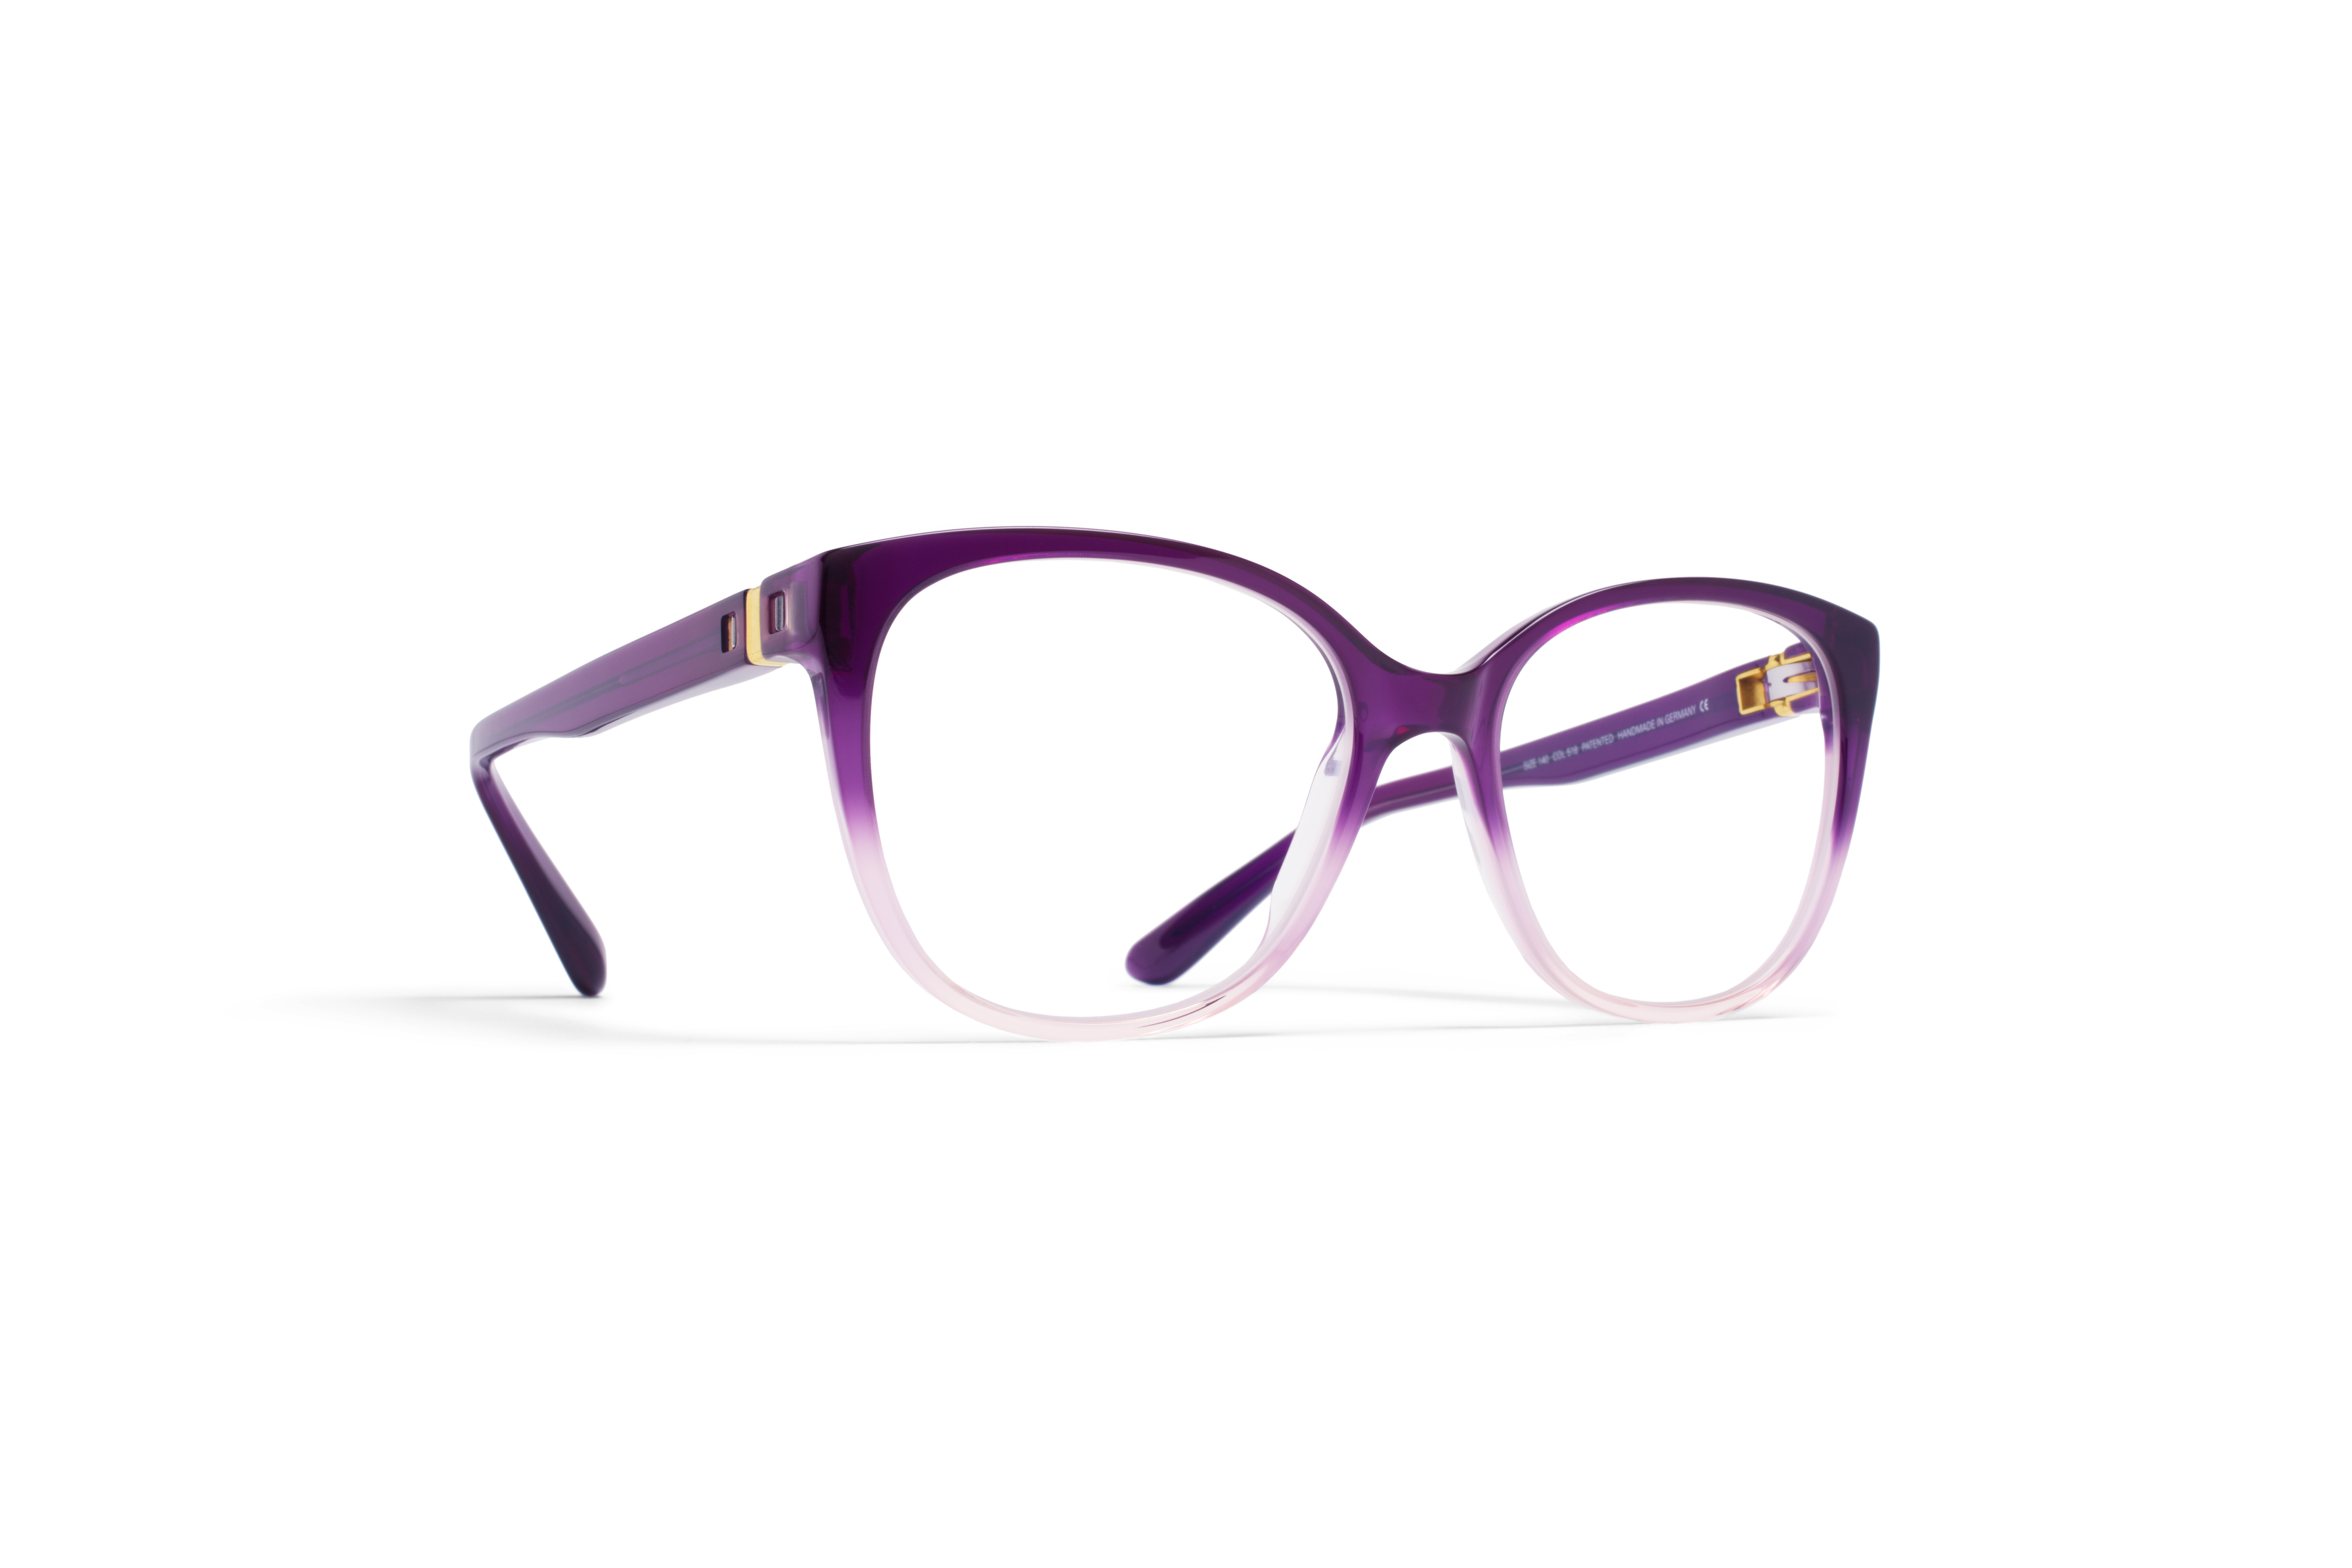 MYKITA No2 Rx Inga Purple Progress Clear P5758480040436